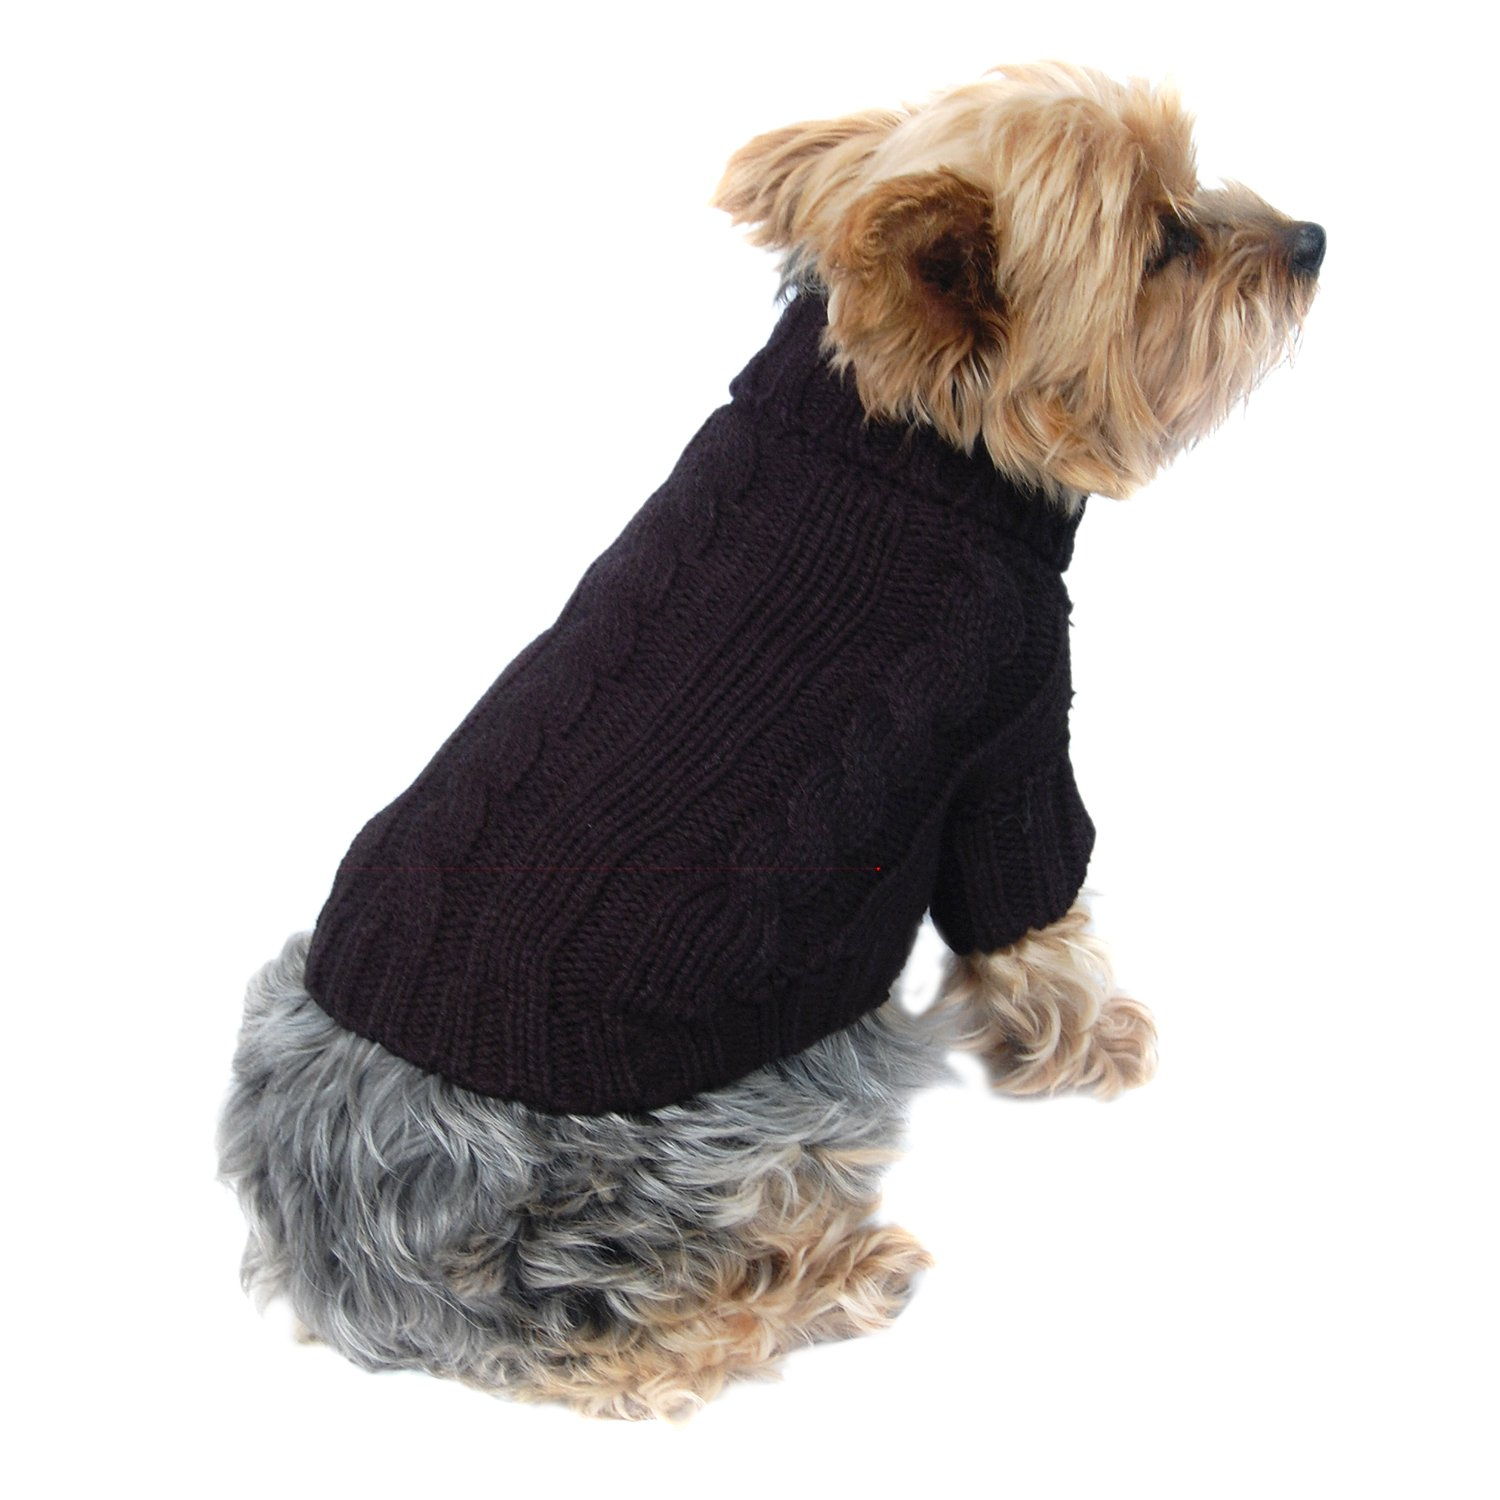 Anima Black Classic Cable Knit Dog and Pet Sweater, X Small